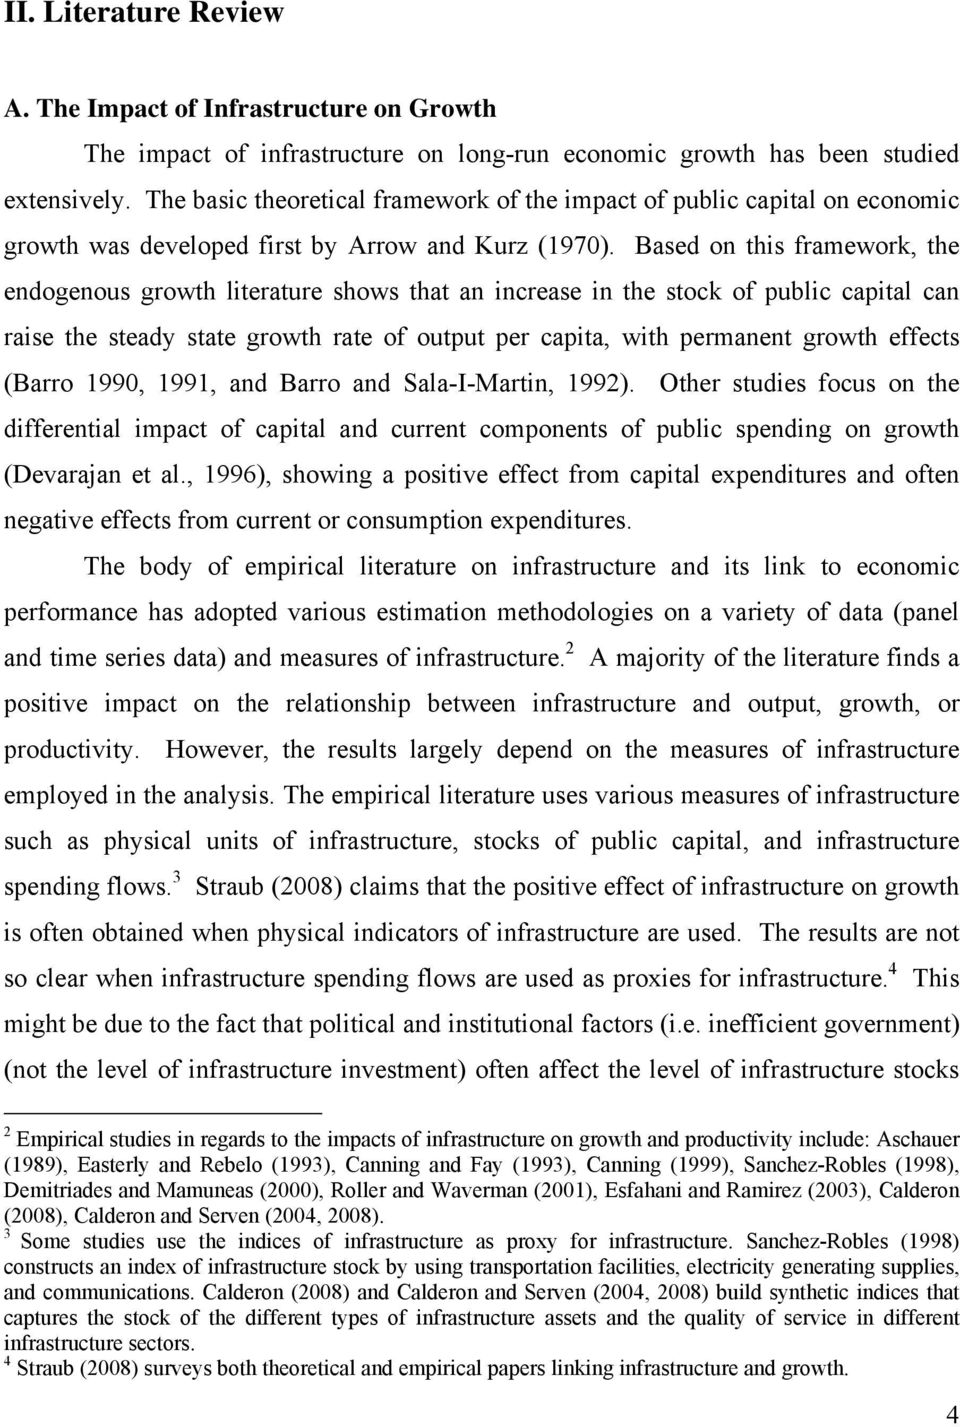 Based on this framework, the endogenous growth literature shows that an increase in the stock of public capital can raise the steady state growth rate of output per capita, with permanent growth